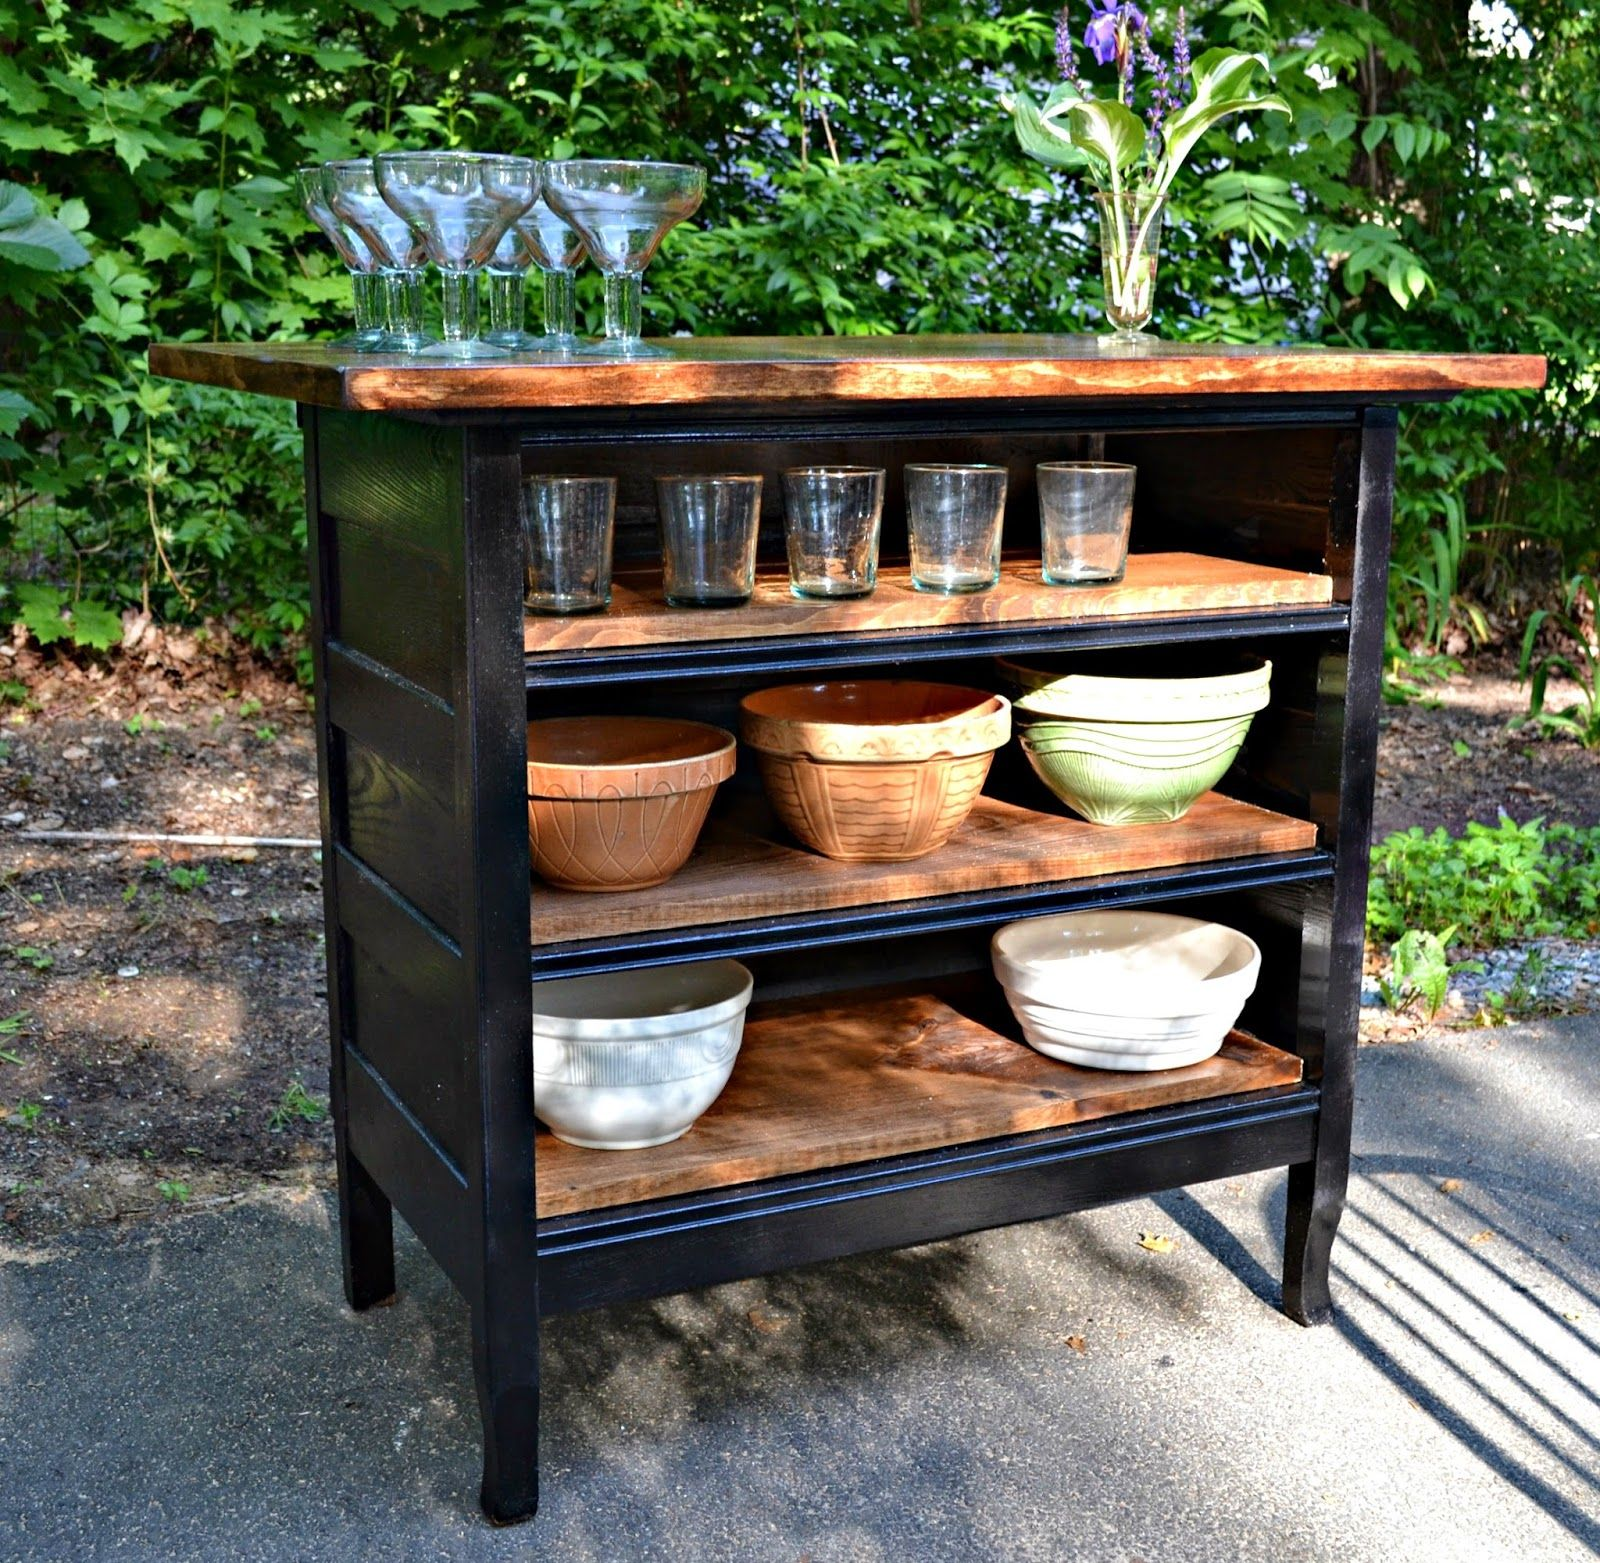 Heir and Space: An Antique Kitchen Island | For the Home | Pinterest ...